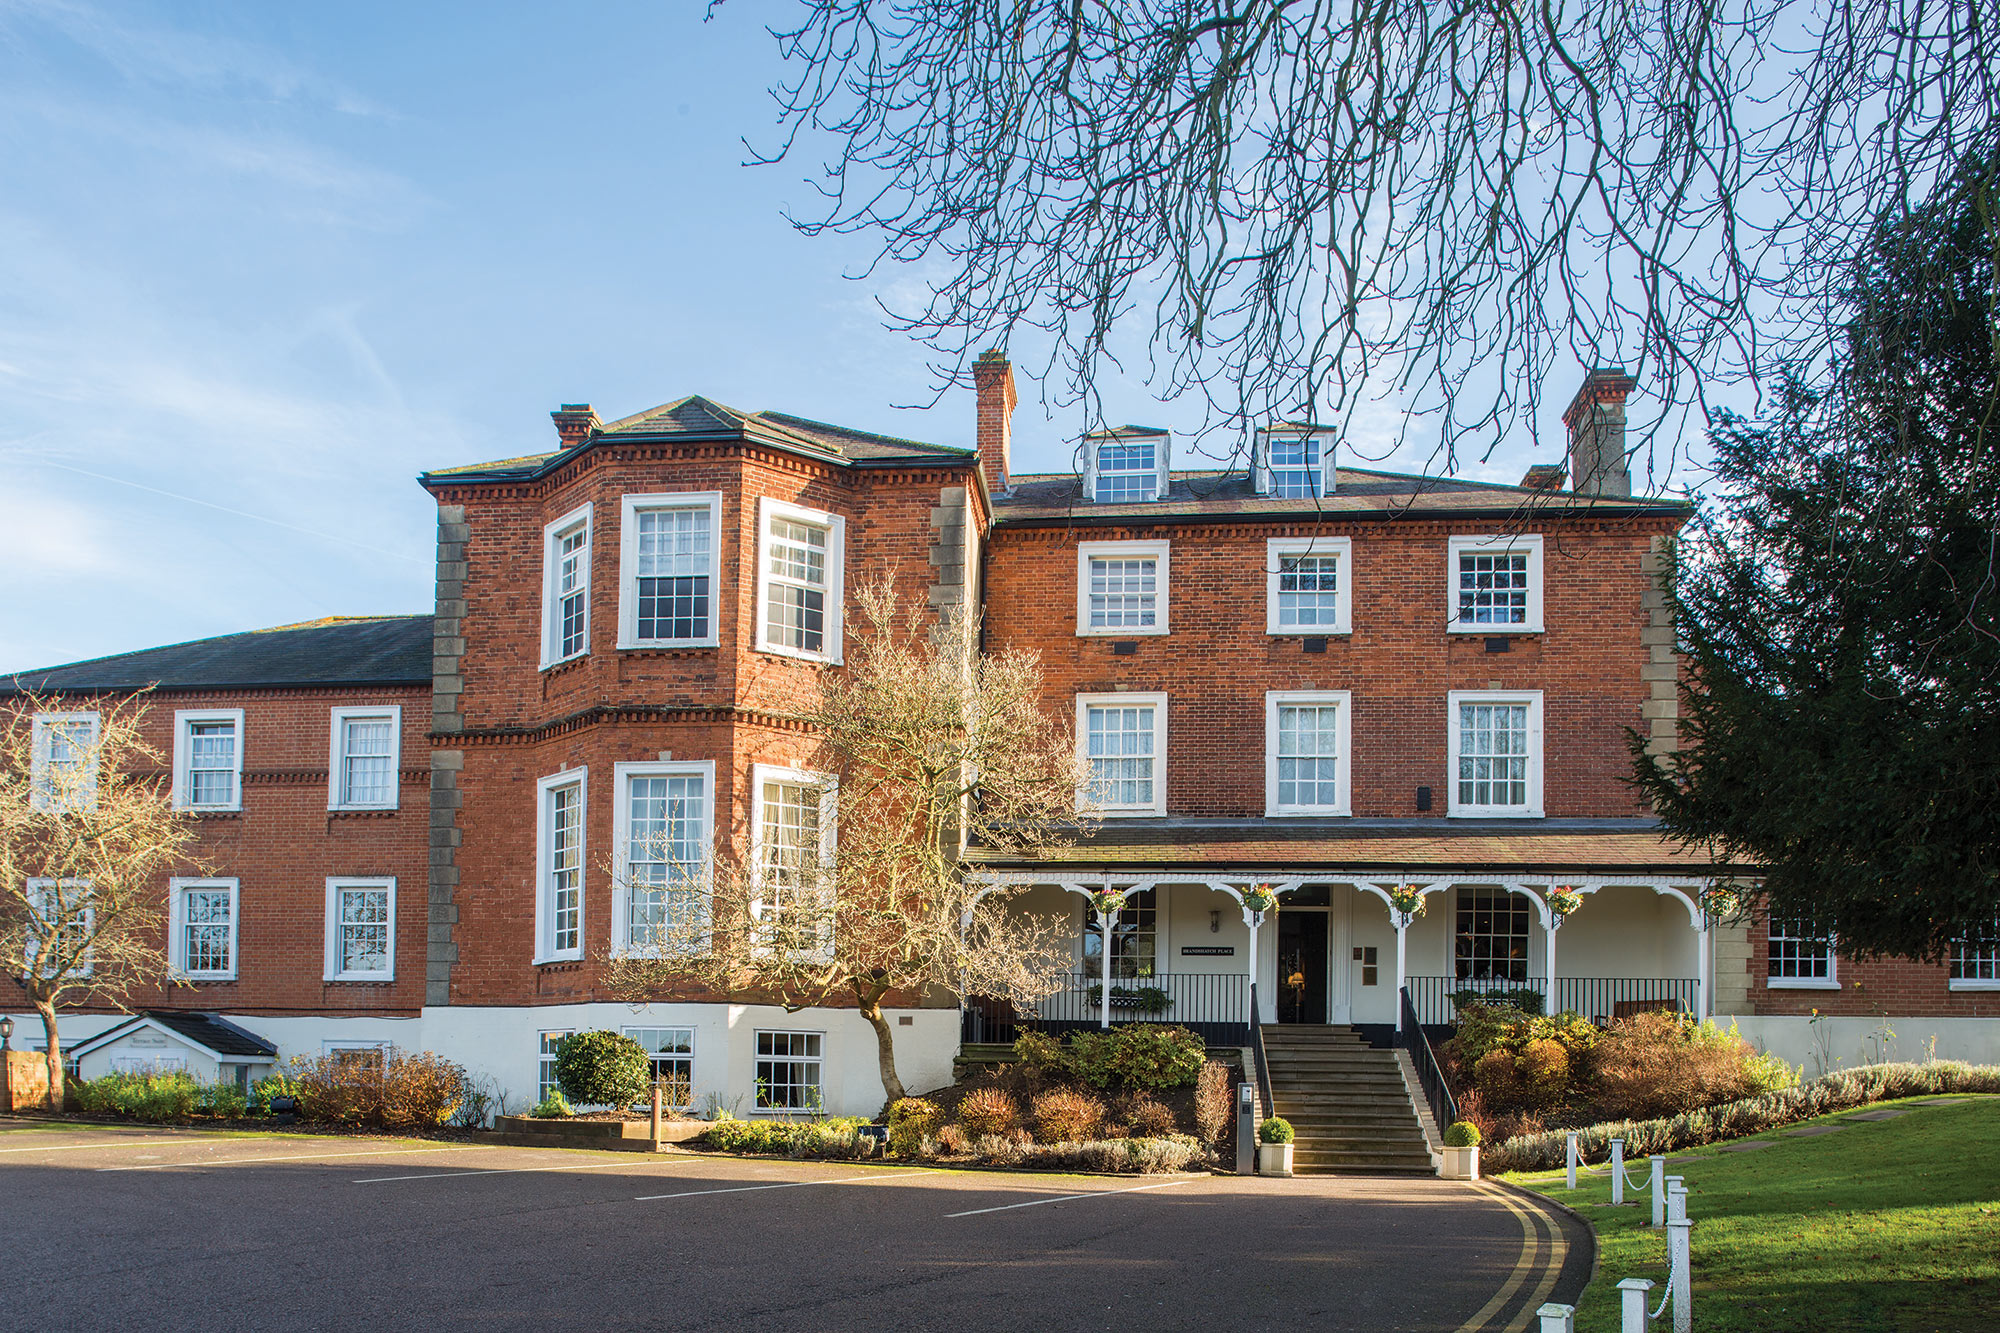 Brandshatch Place Hotel and Spa - Kent, UK